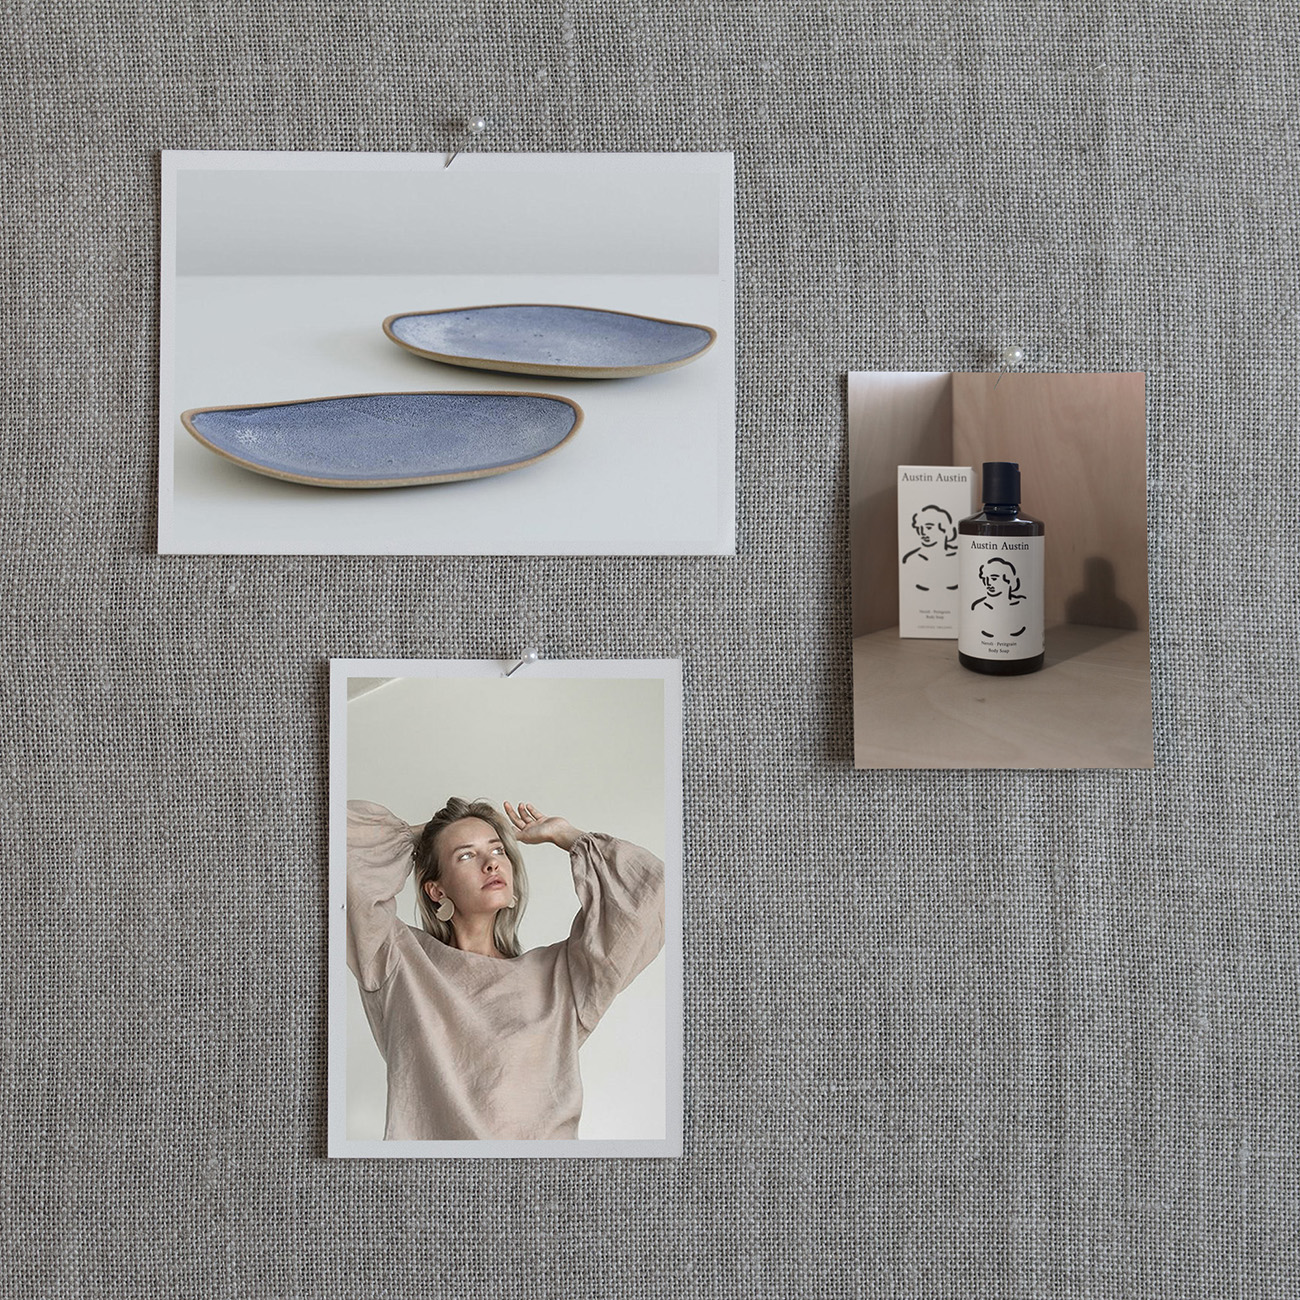 Clockwise from left to right: 1. Skandihus Ceramics, plates from £31, 2. Neroli & Petitgrain Body Soap by Austin Austin, 300ml for £14, 3. Long Sleeve Caramel Weightless Blouse by KM by Lange for €109